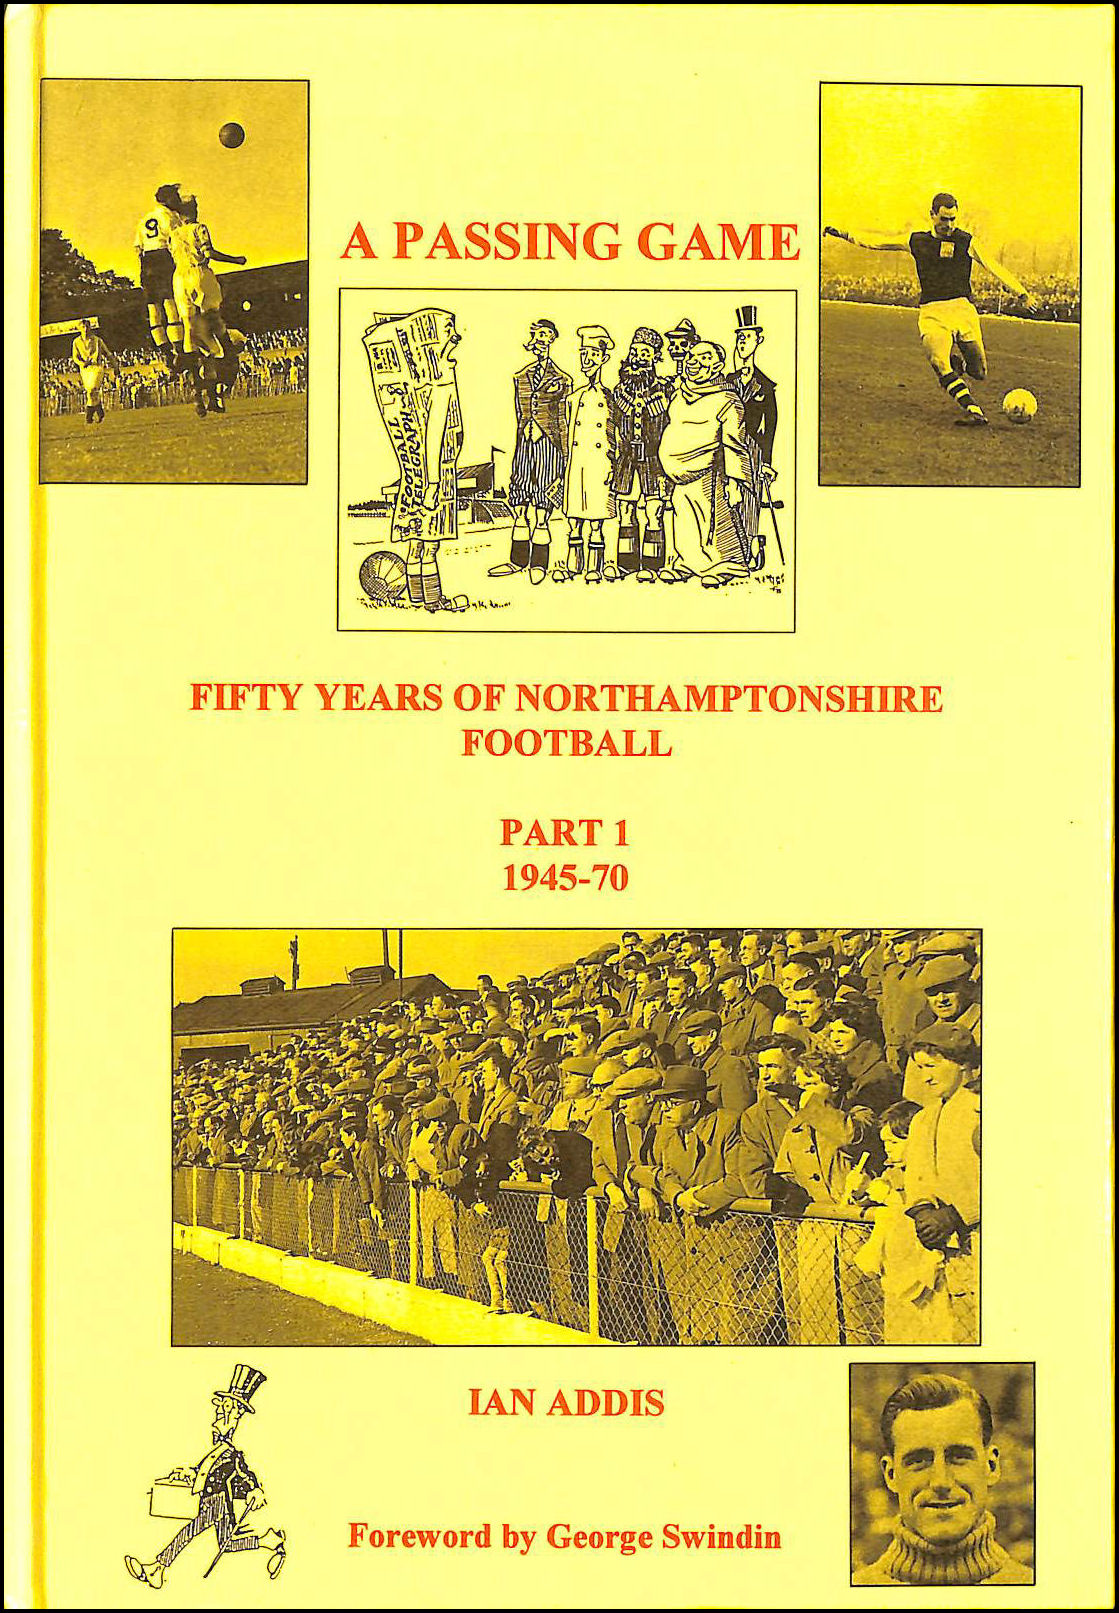 Image for The Passing Game: 1945-70 Pt. 1: 50 Years of Northamptonshire Football